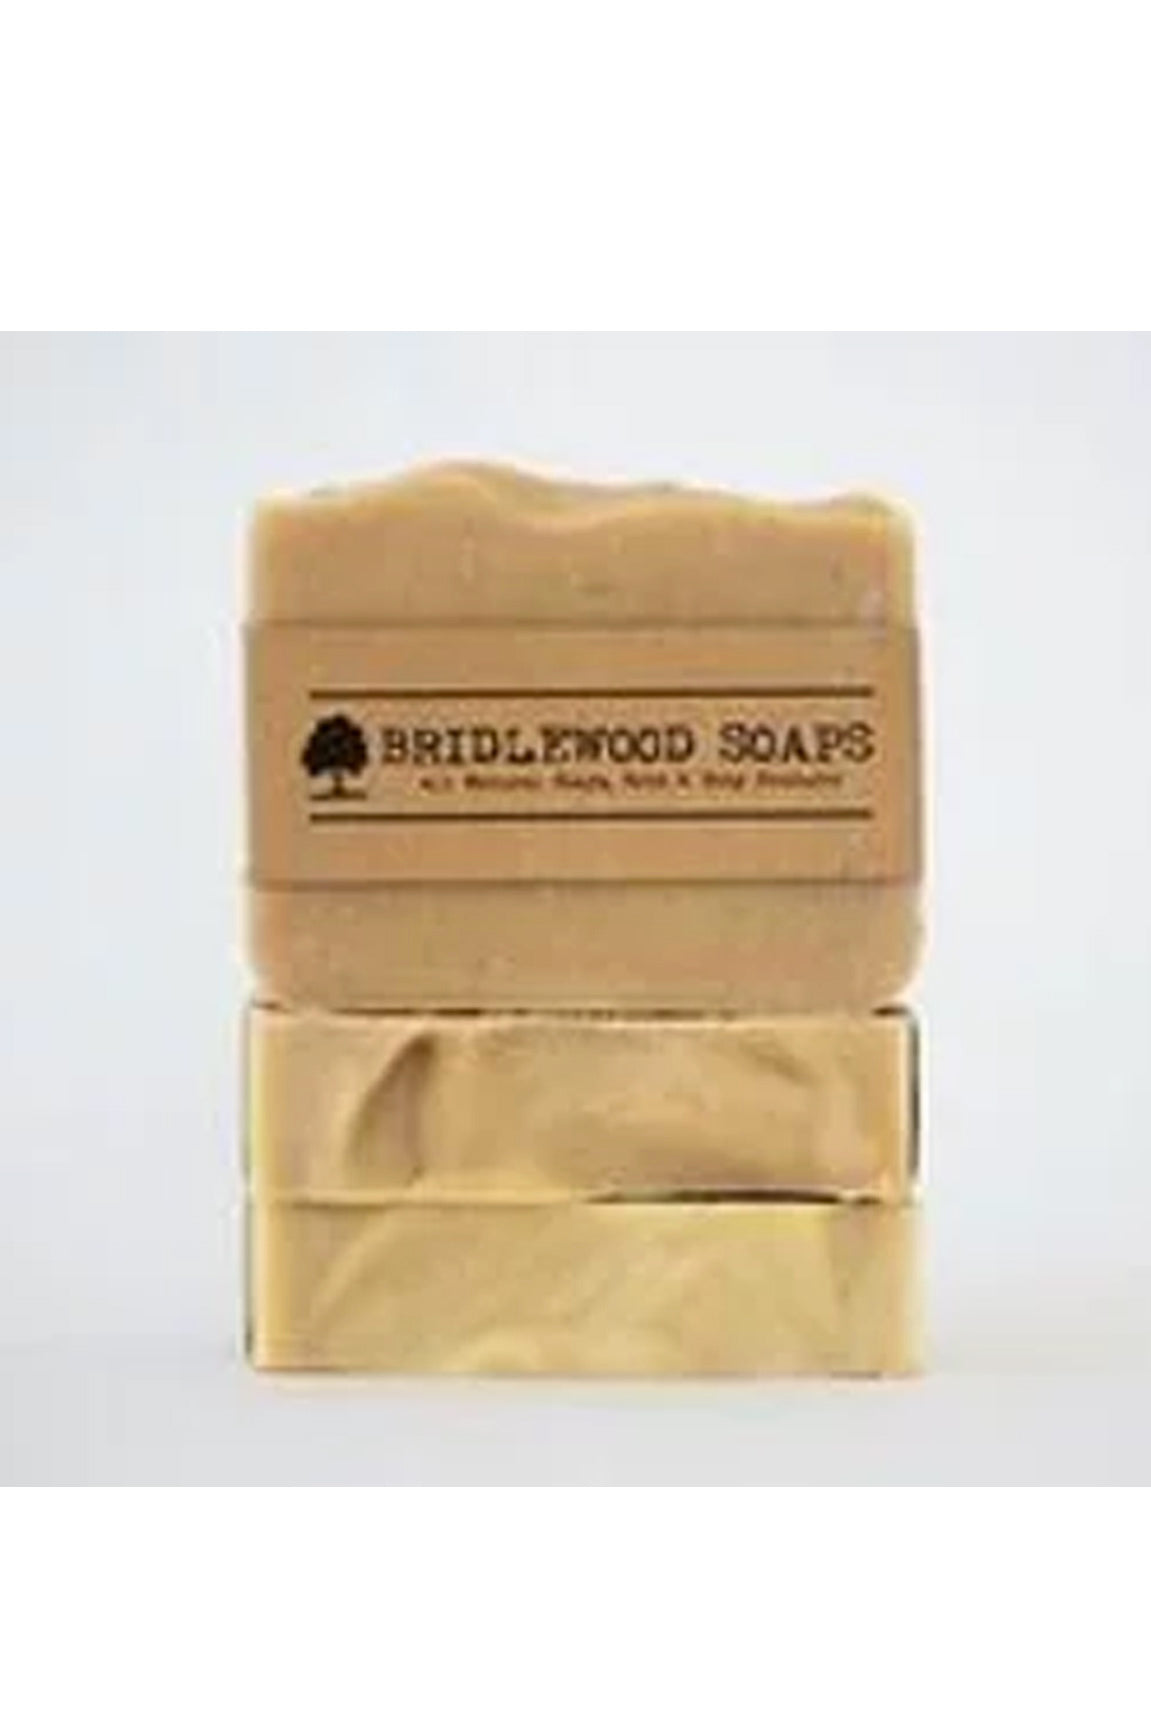 BRIDLEWOOD SOAPS Green Tea Shampoo Bar